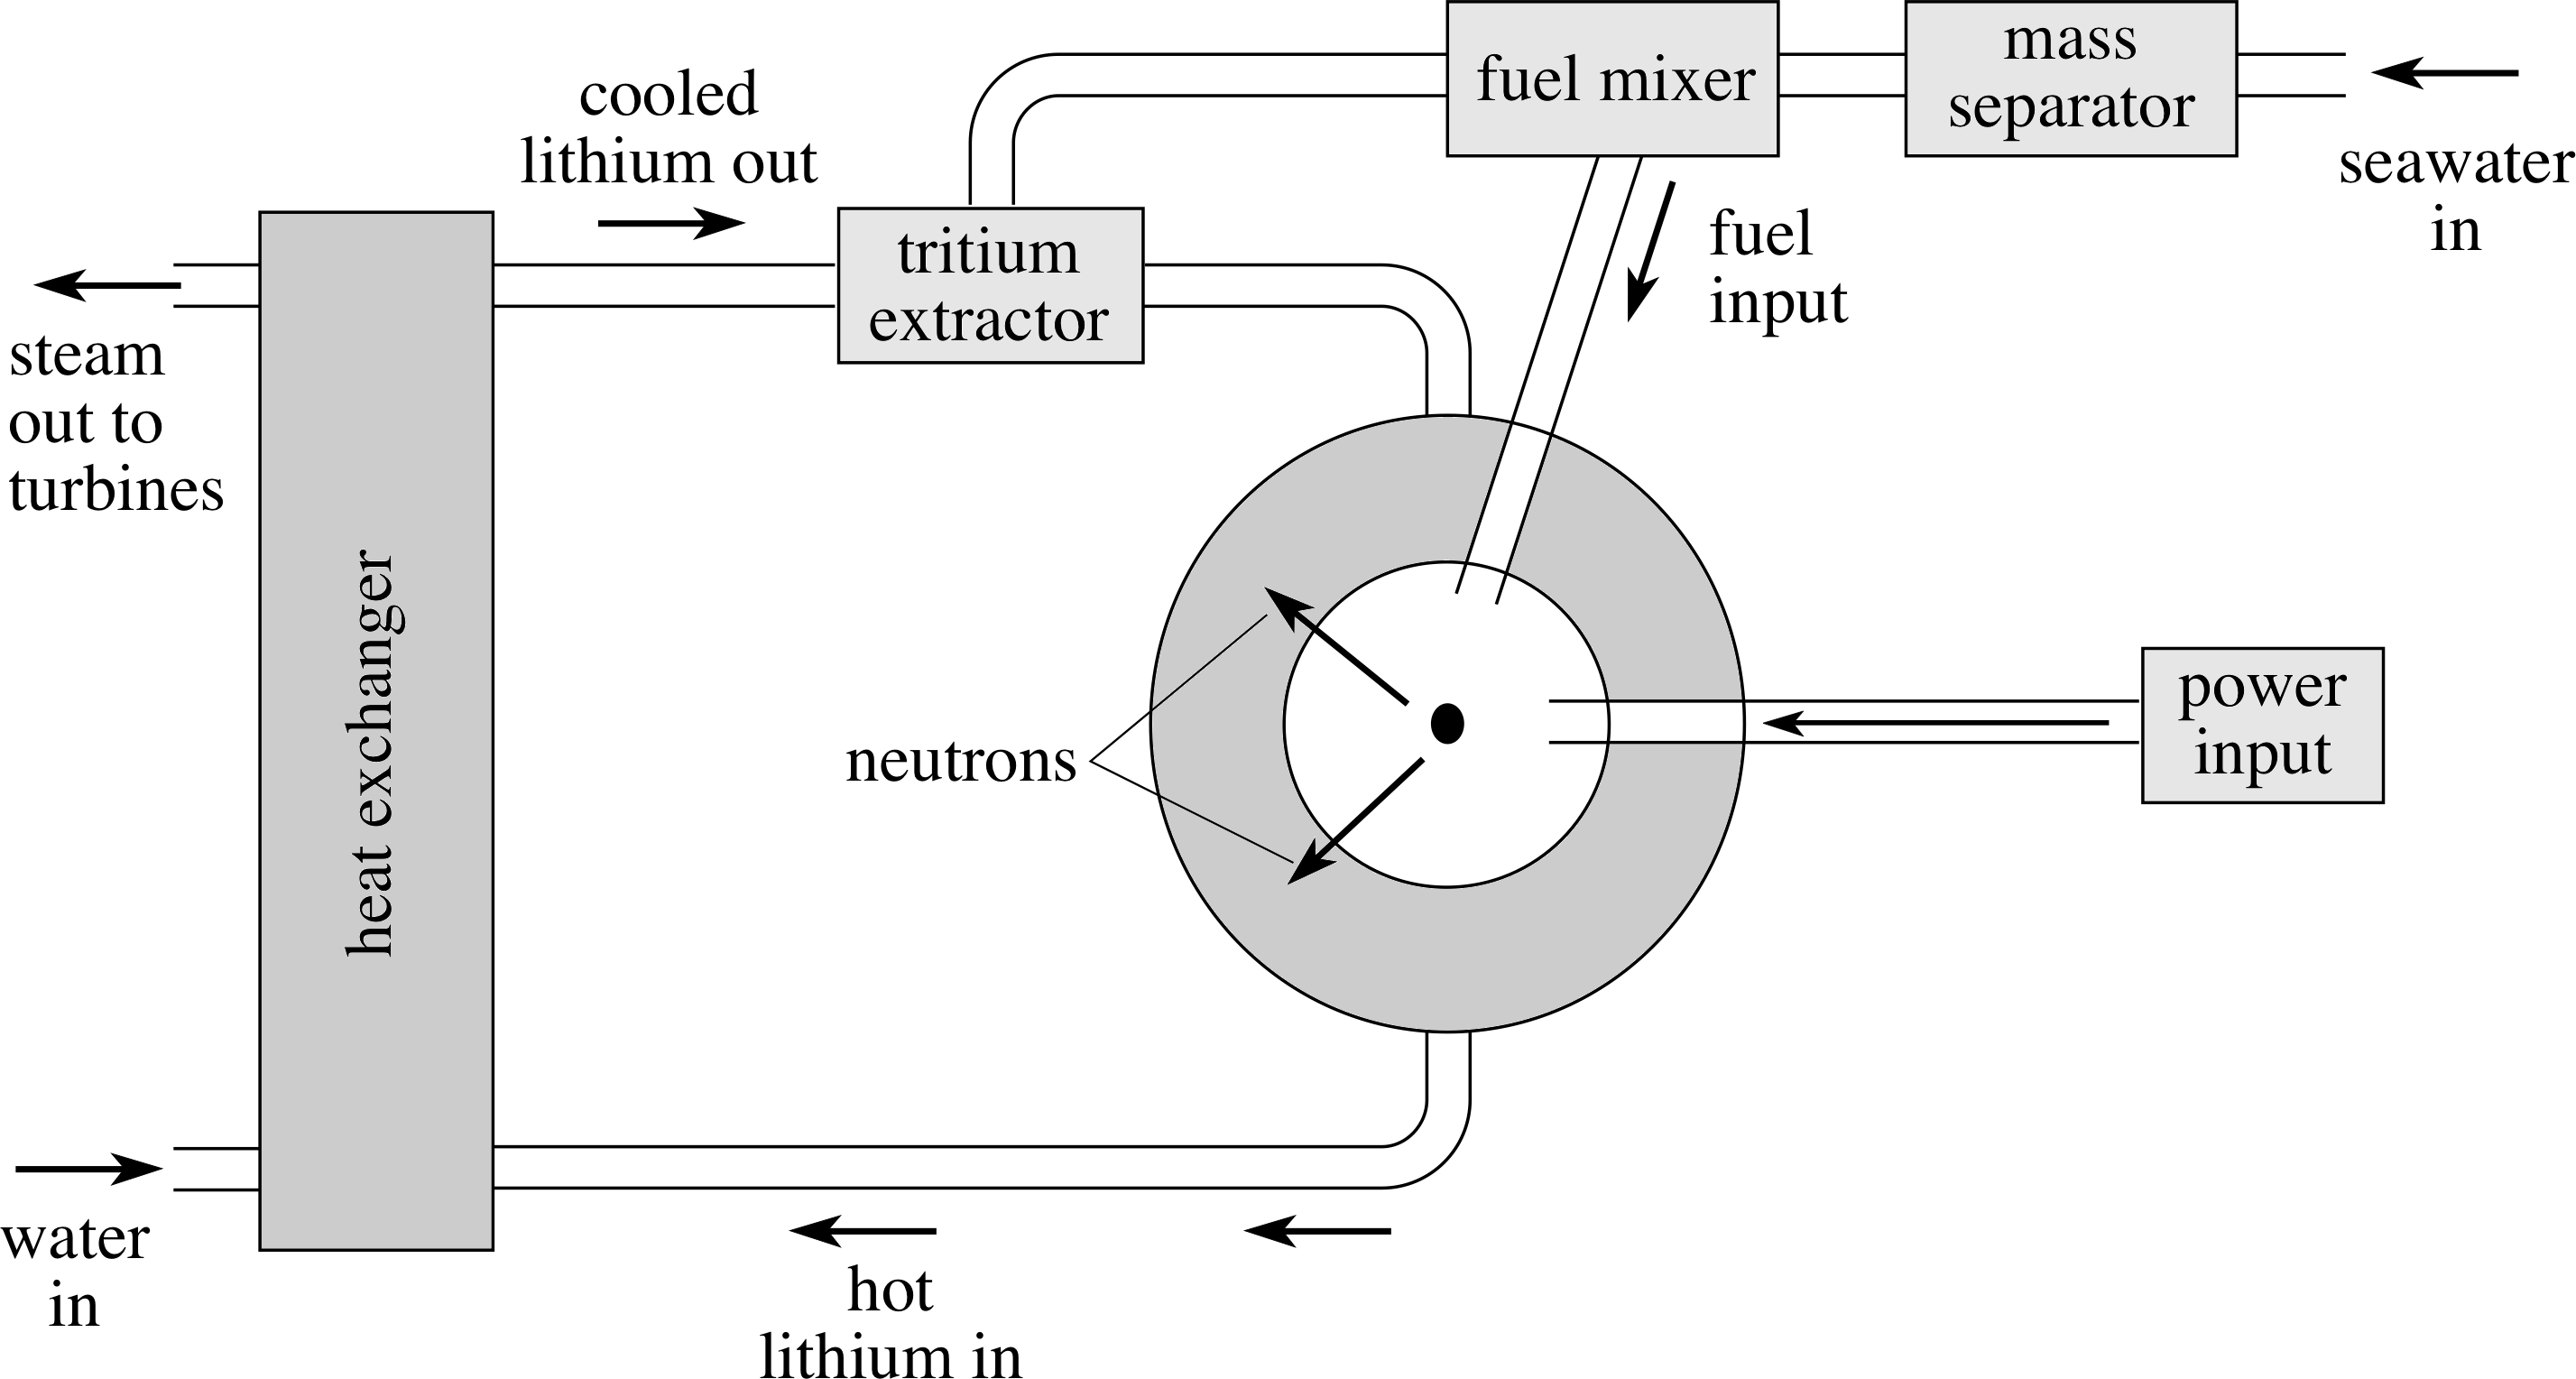 Nuclear fusion reactor diagram google search advanced nuclear fusion reactor diagram google search pooptronica Image collections